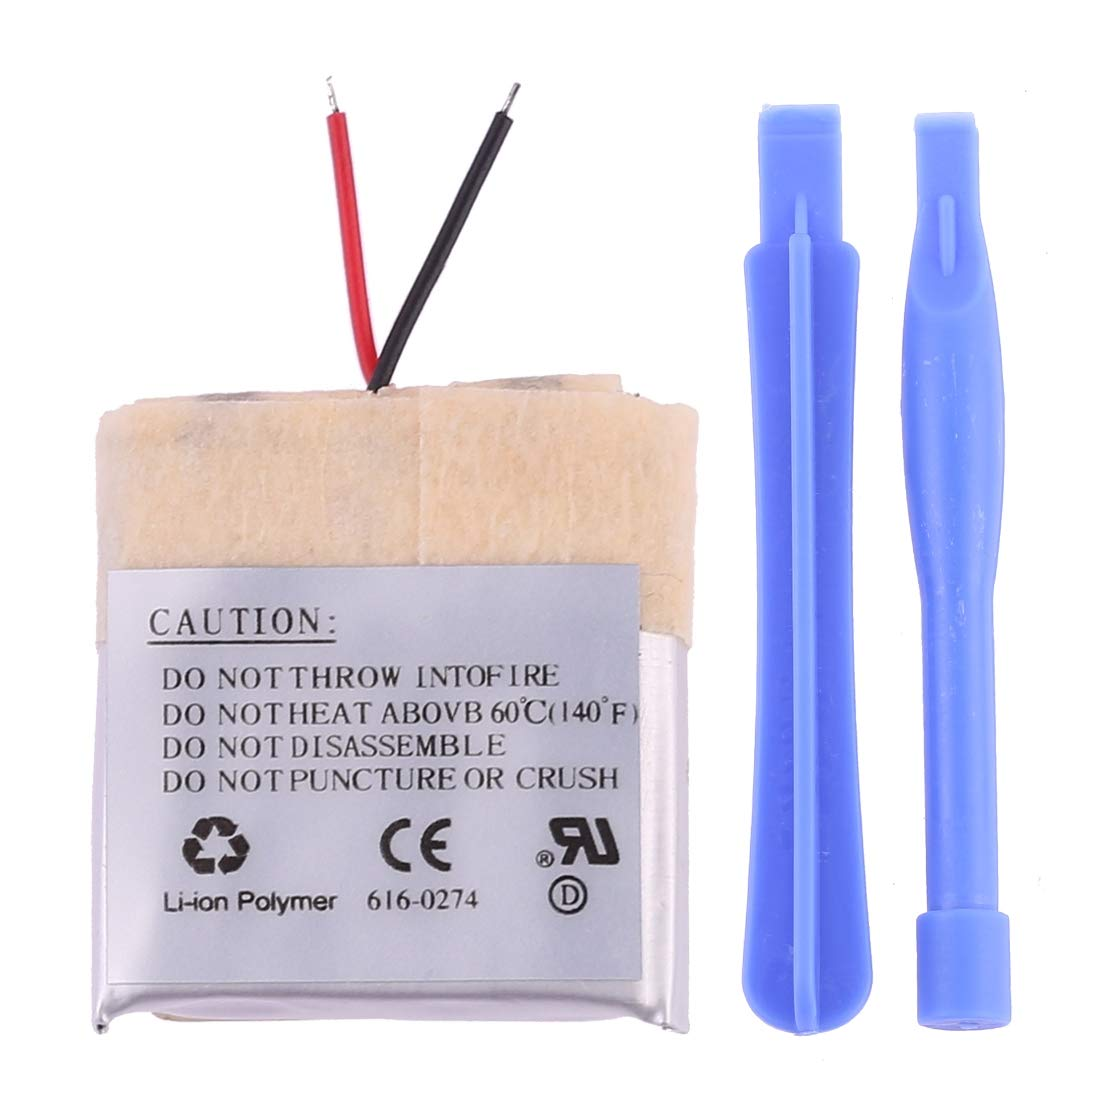 ZQ House Rechargeable Replacement Li-Polymer Battery for iPod Shuffle 2 Repair